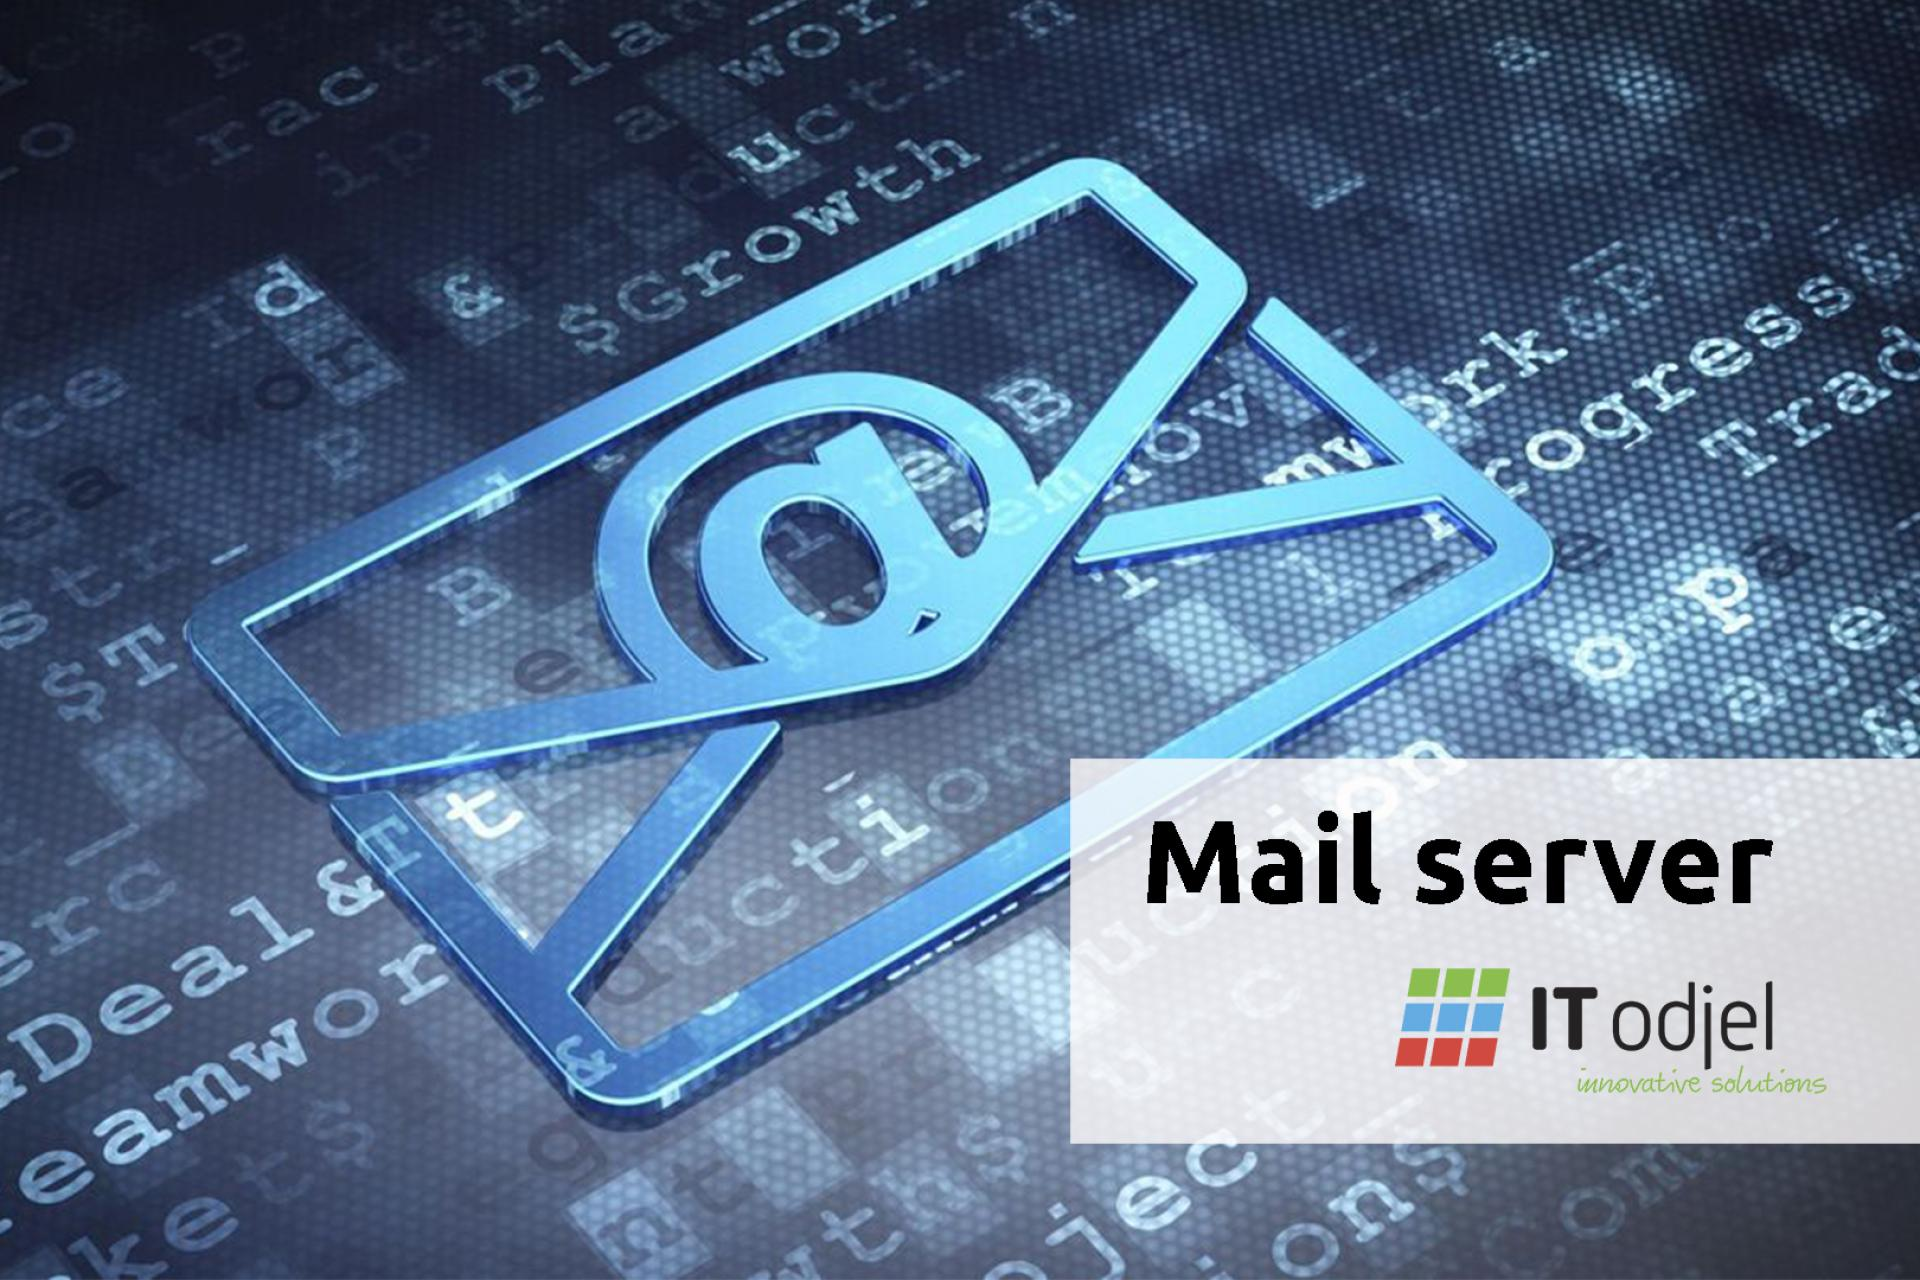 mail server swotted